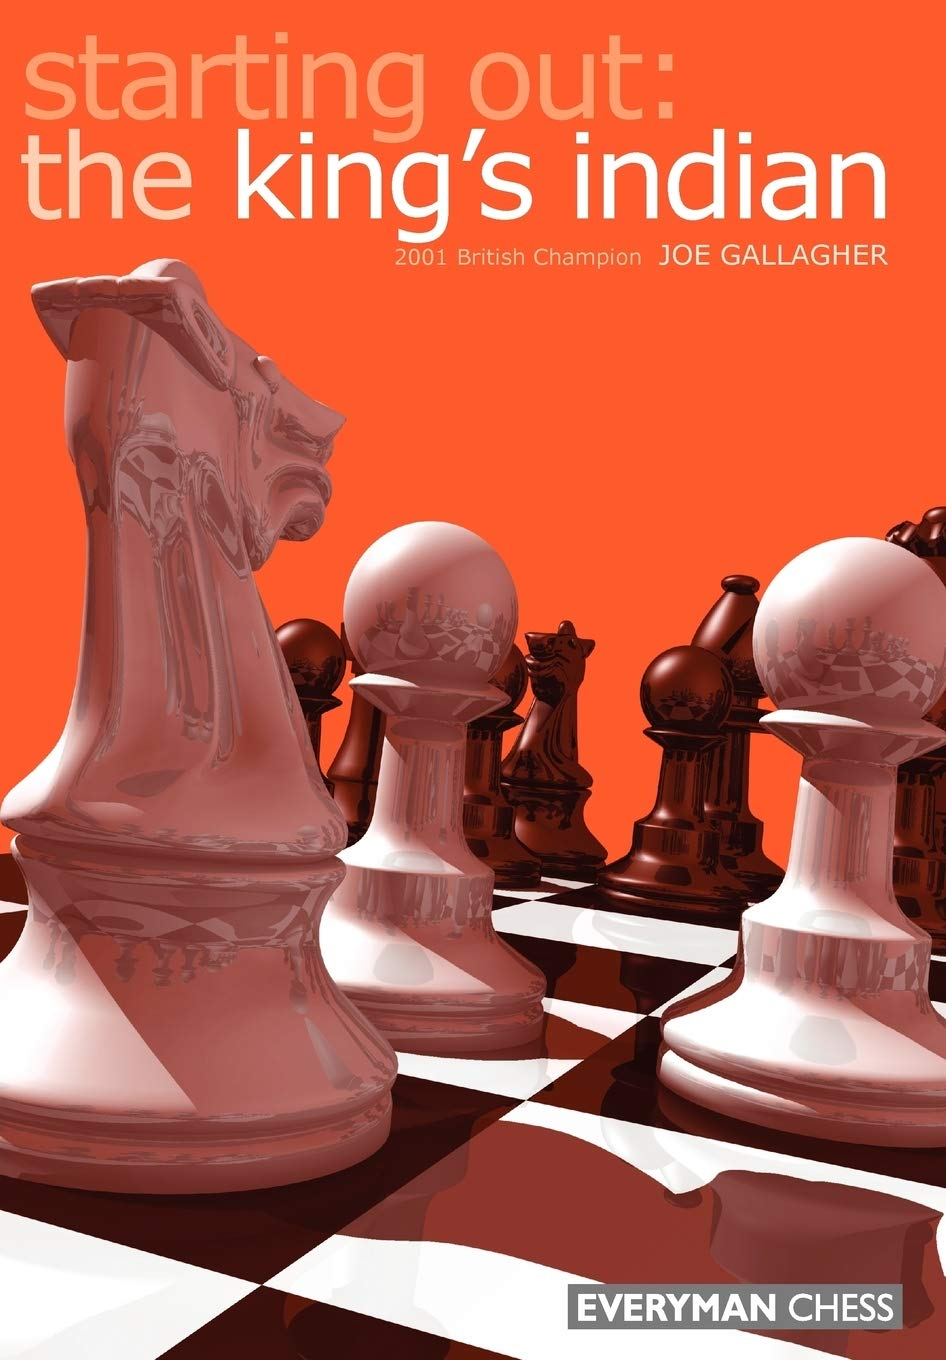 Starting Out: King's Indian, Everyman Chess, ISBN 1-85744-234-2